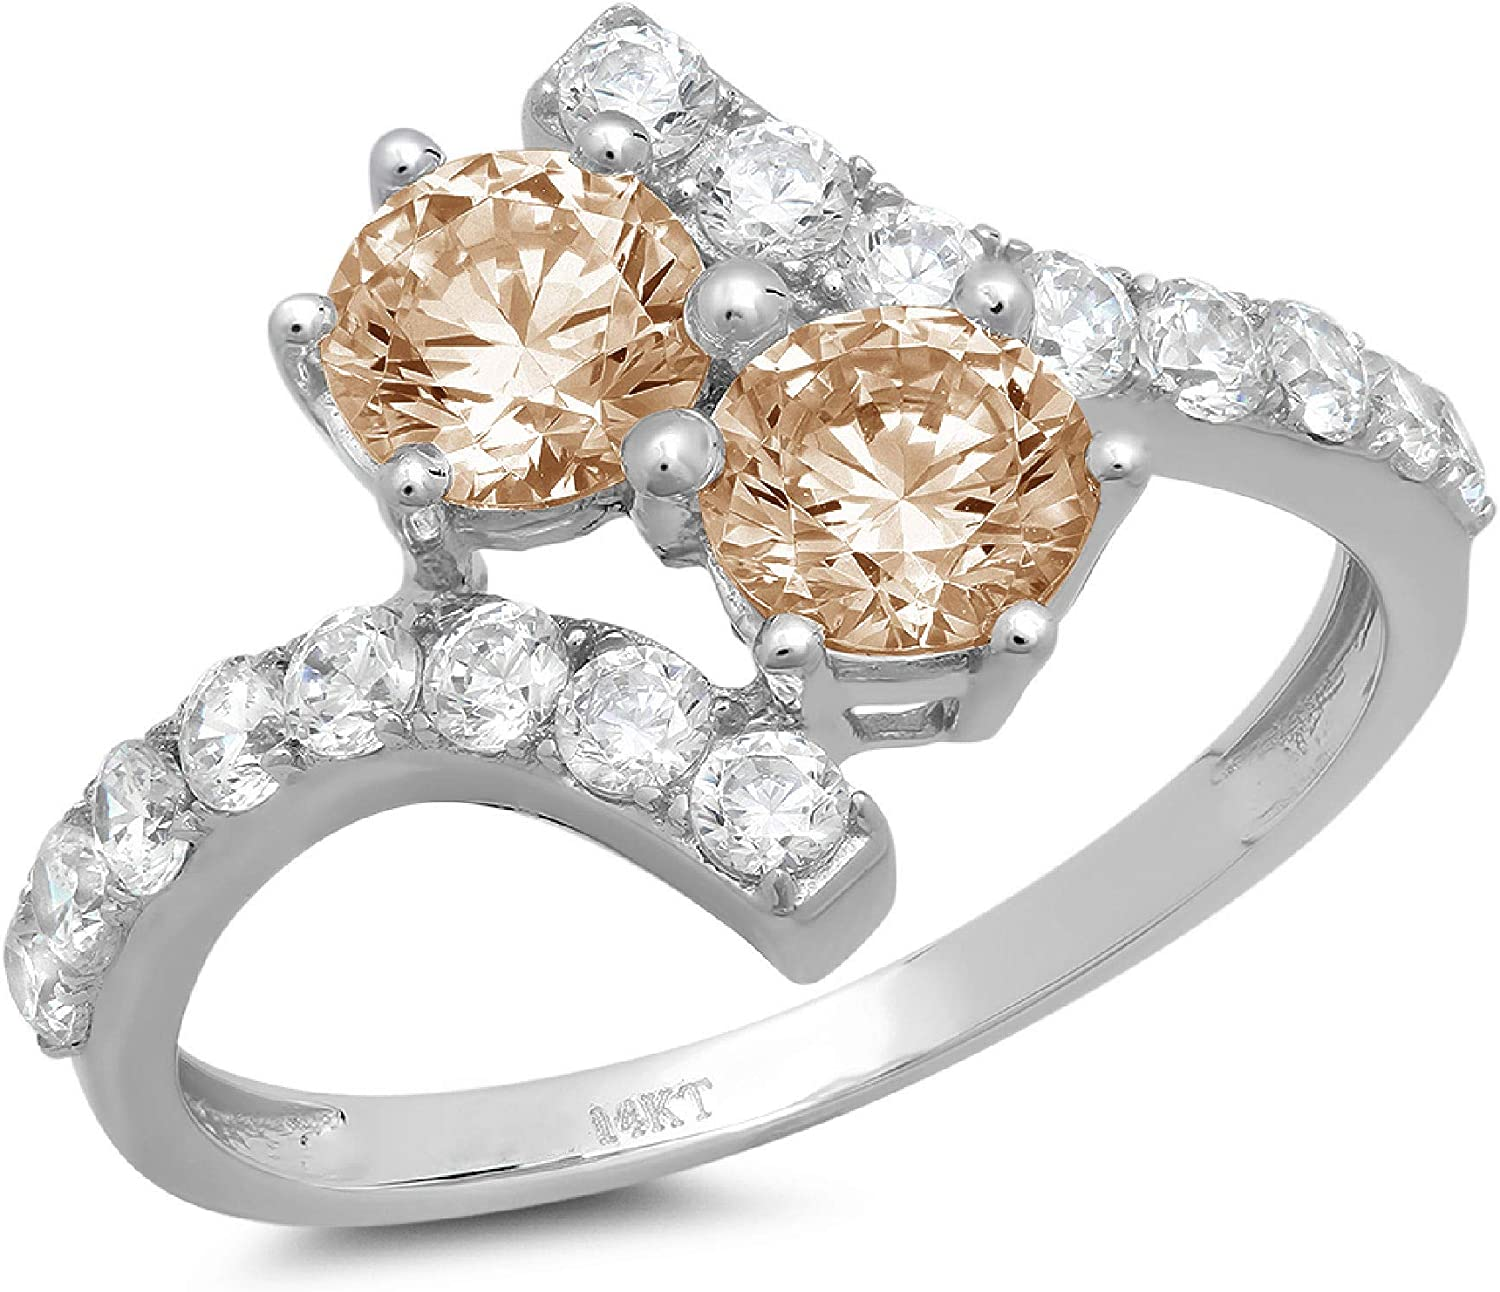 Clara Pucci 2.08 ct Round Cut Solitaire Stunning Ge Washington Mall stone It is very popular love 2